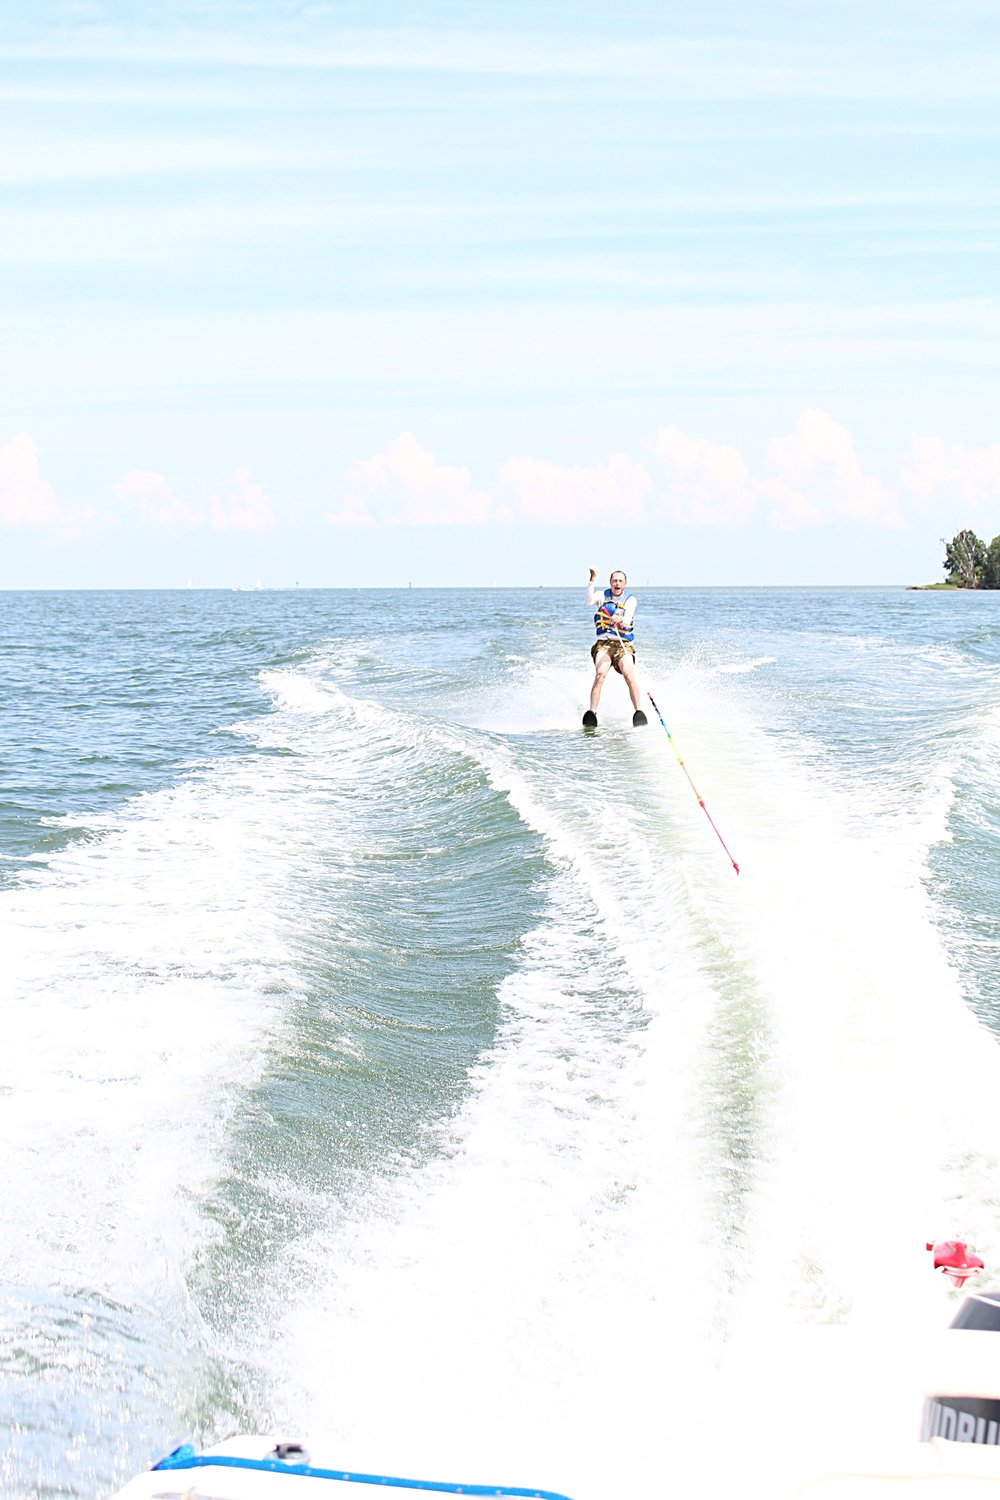 My dad water-skiing on his 60th birthday